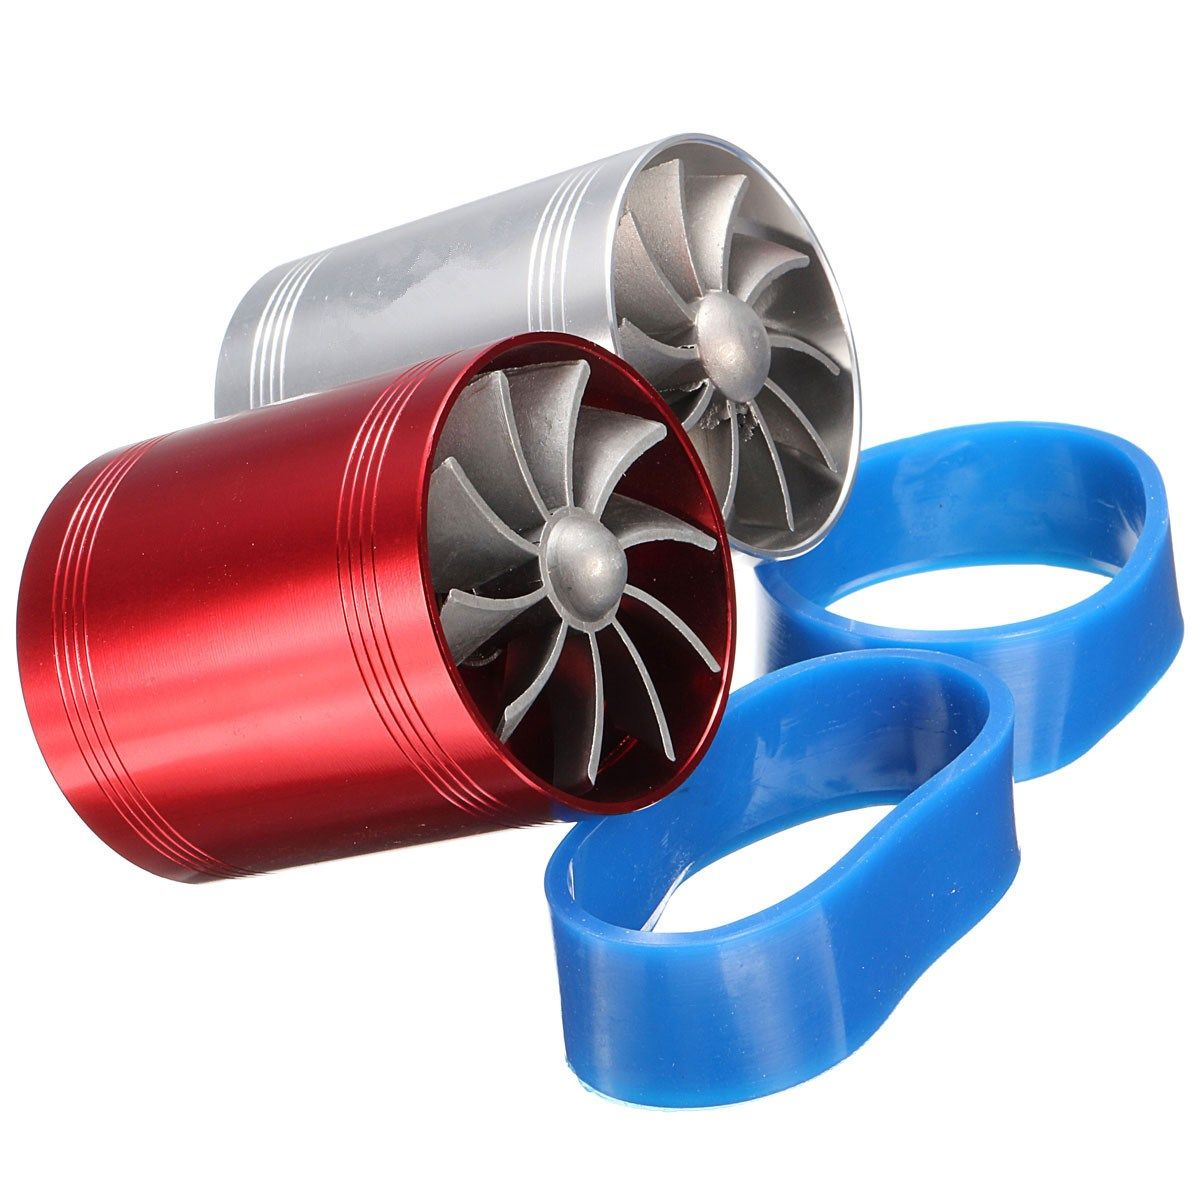 Universal Car Turbo Supercharger Air Intake Dual Fan